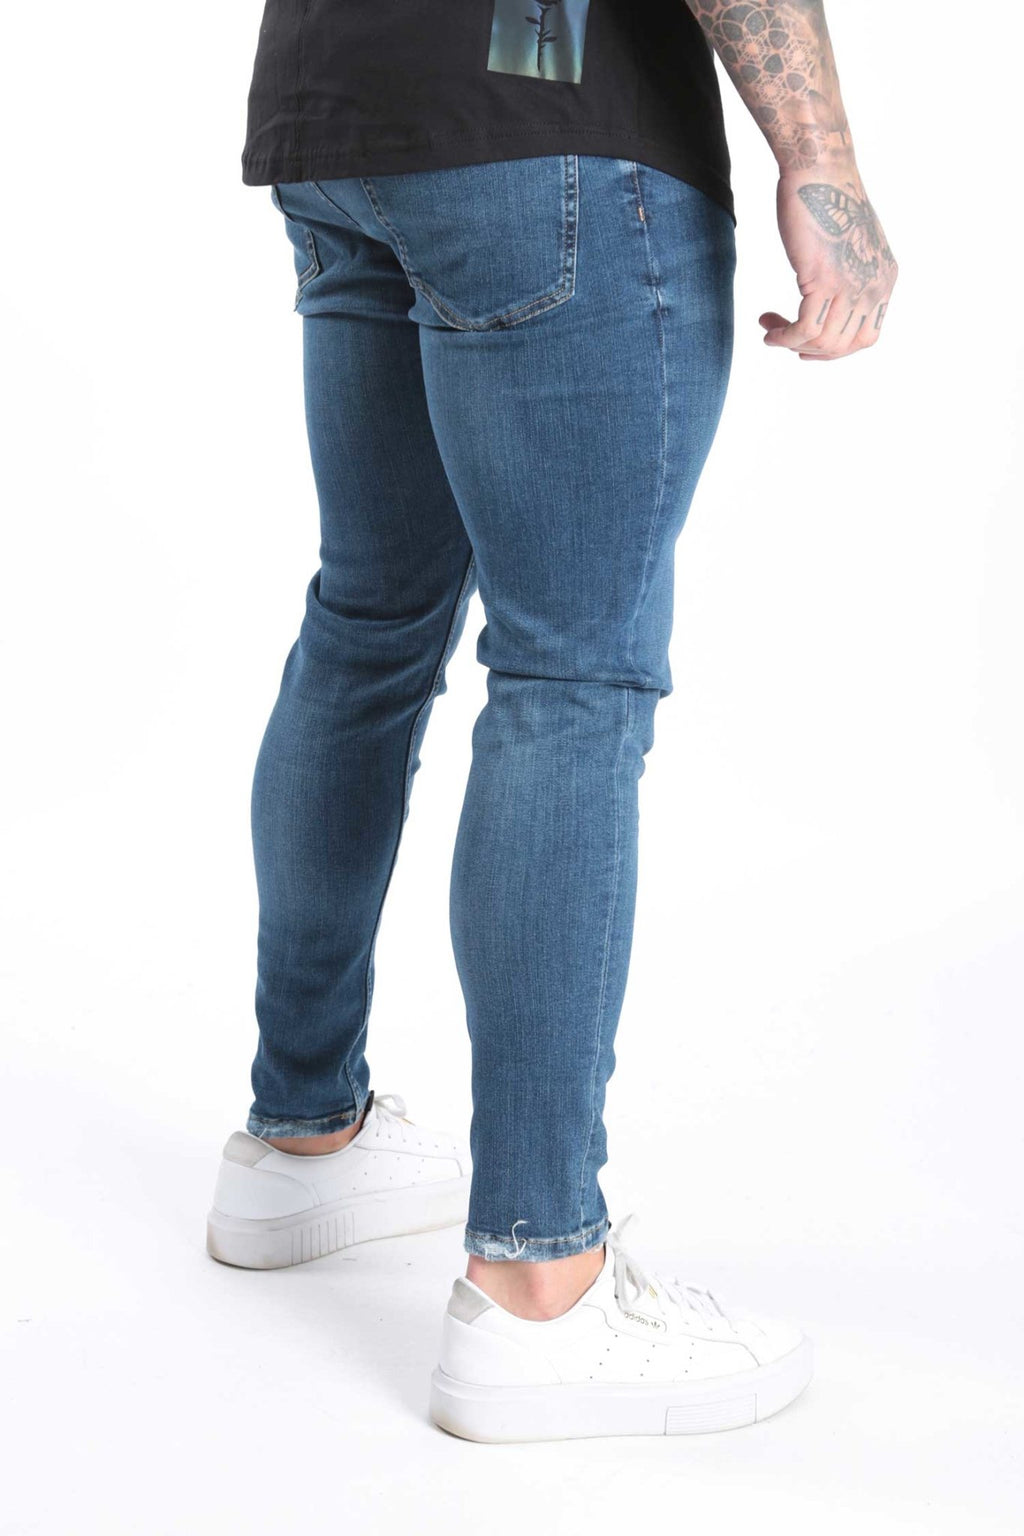 Rose London Slim Dark Blue Wash Denim Jeans - Rose London